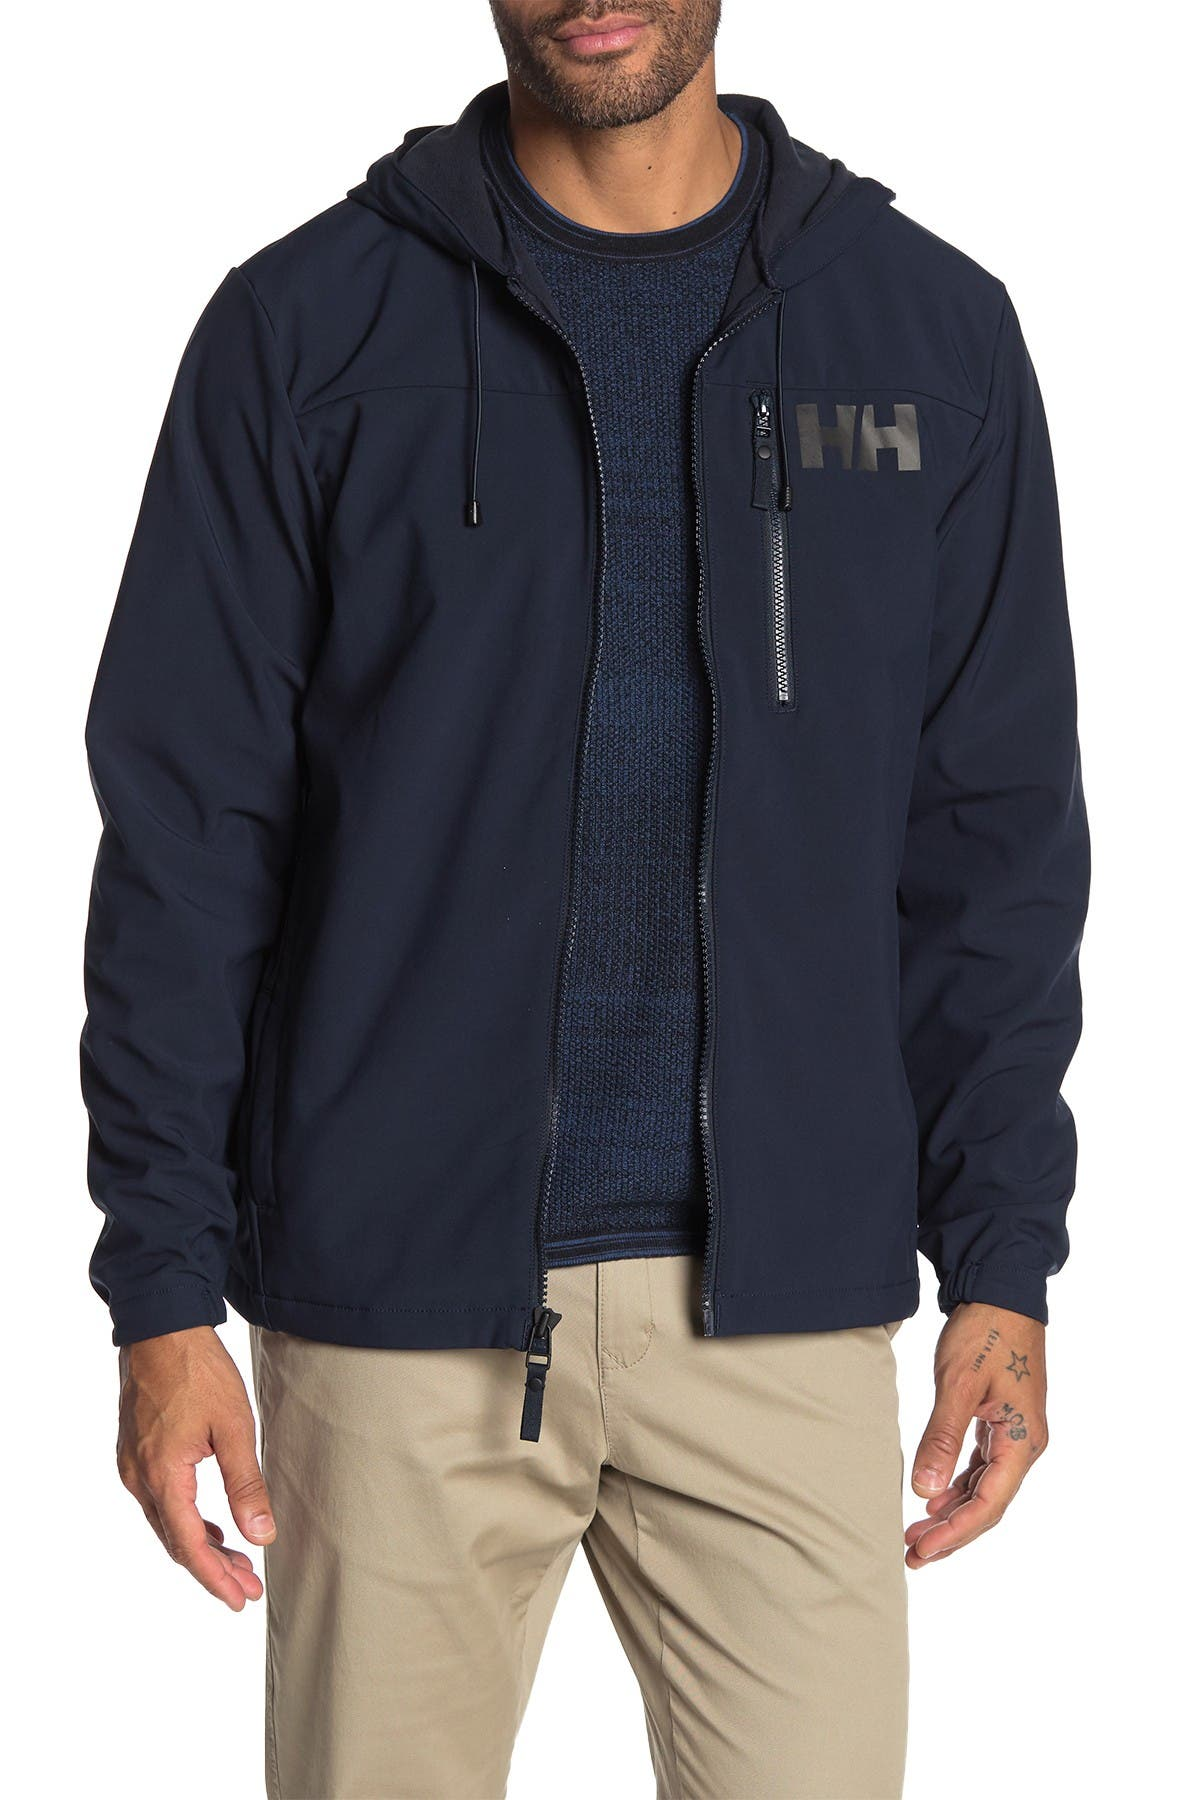 Image of Helly Hansen Active Soft Shell Jacket